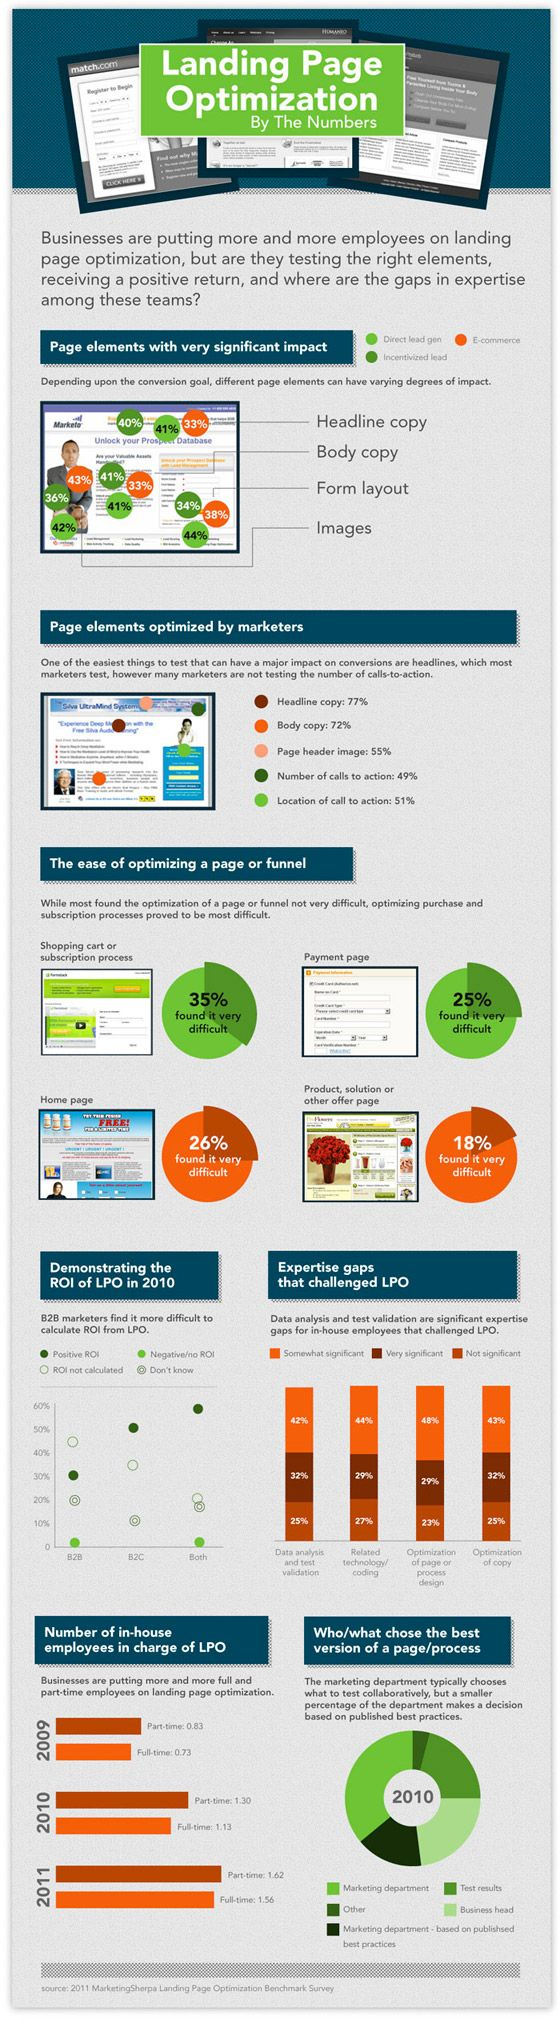 #LandingPage #Optimization by the Numbers. #LPO http://unbounce.com/landing-pages/optimization-by-the-numbers/